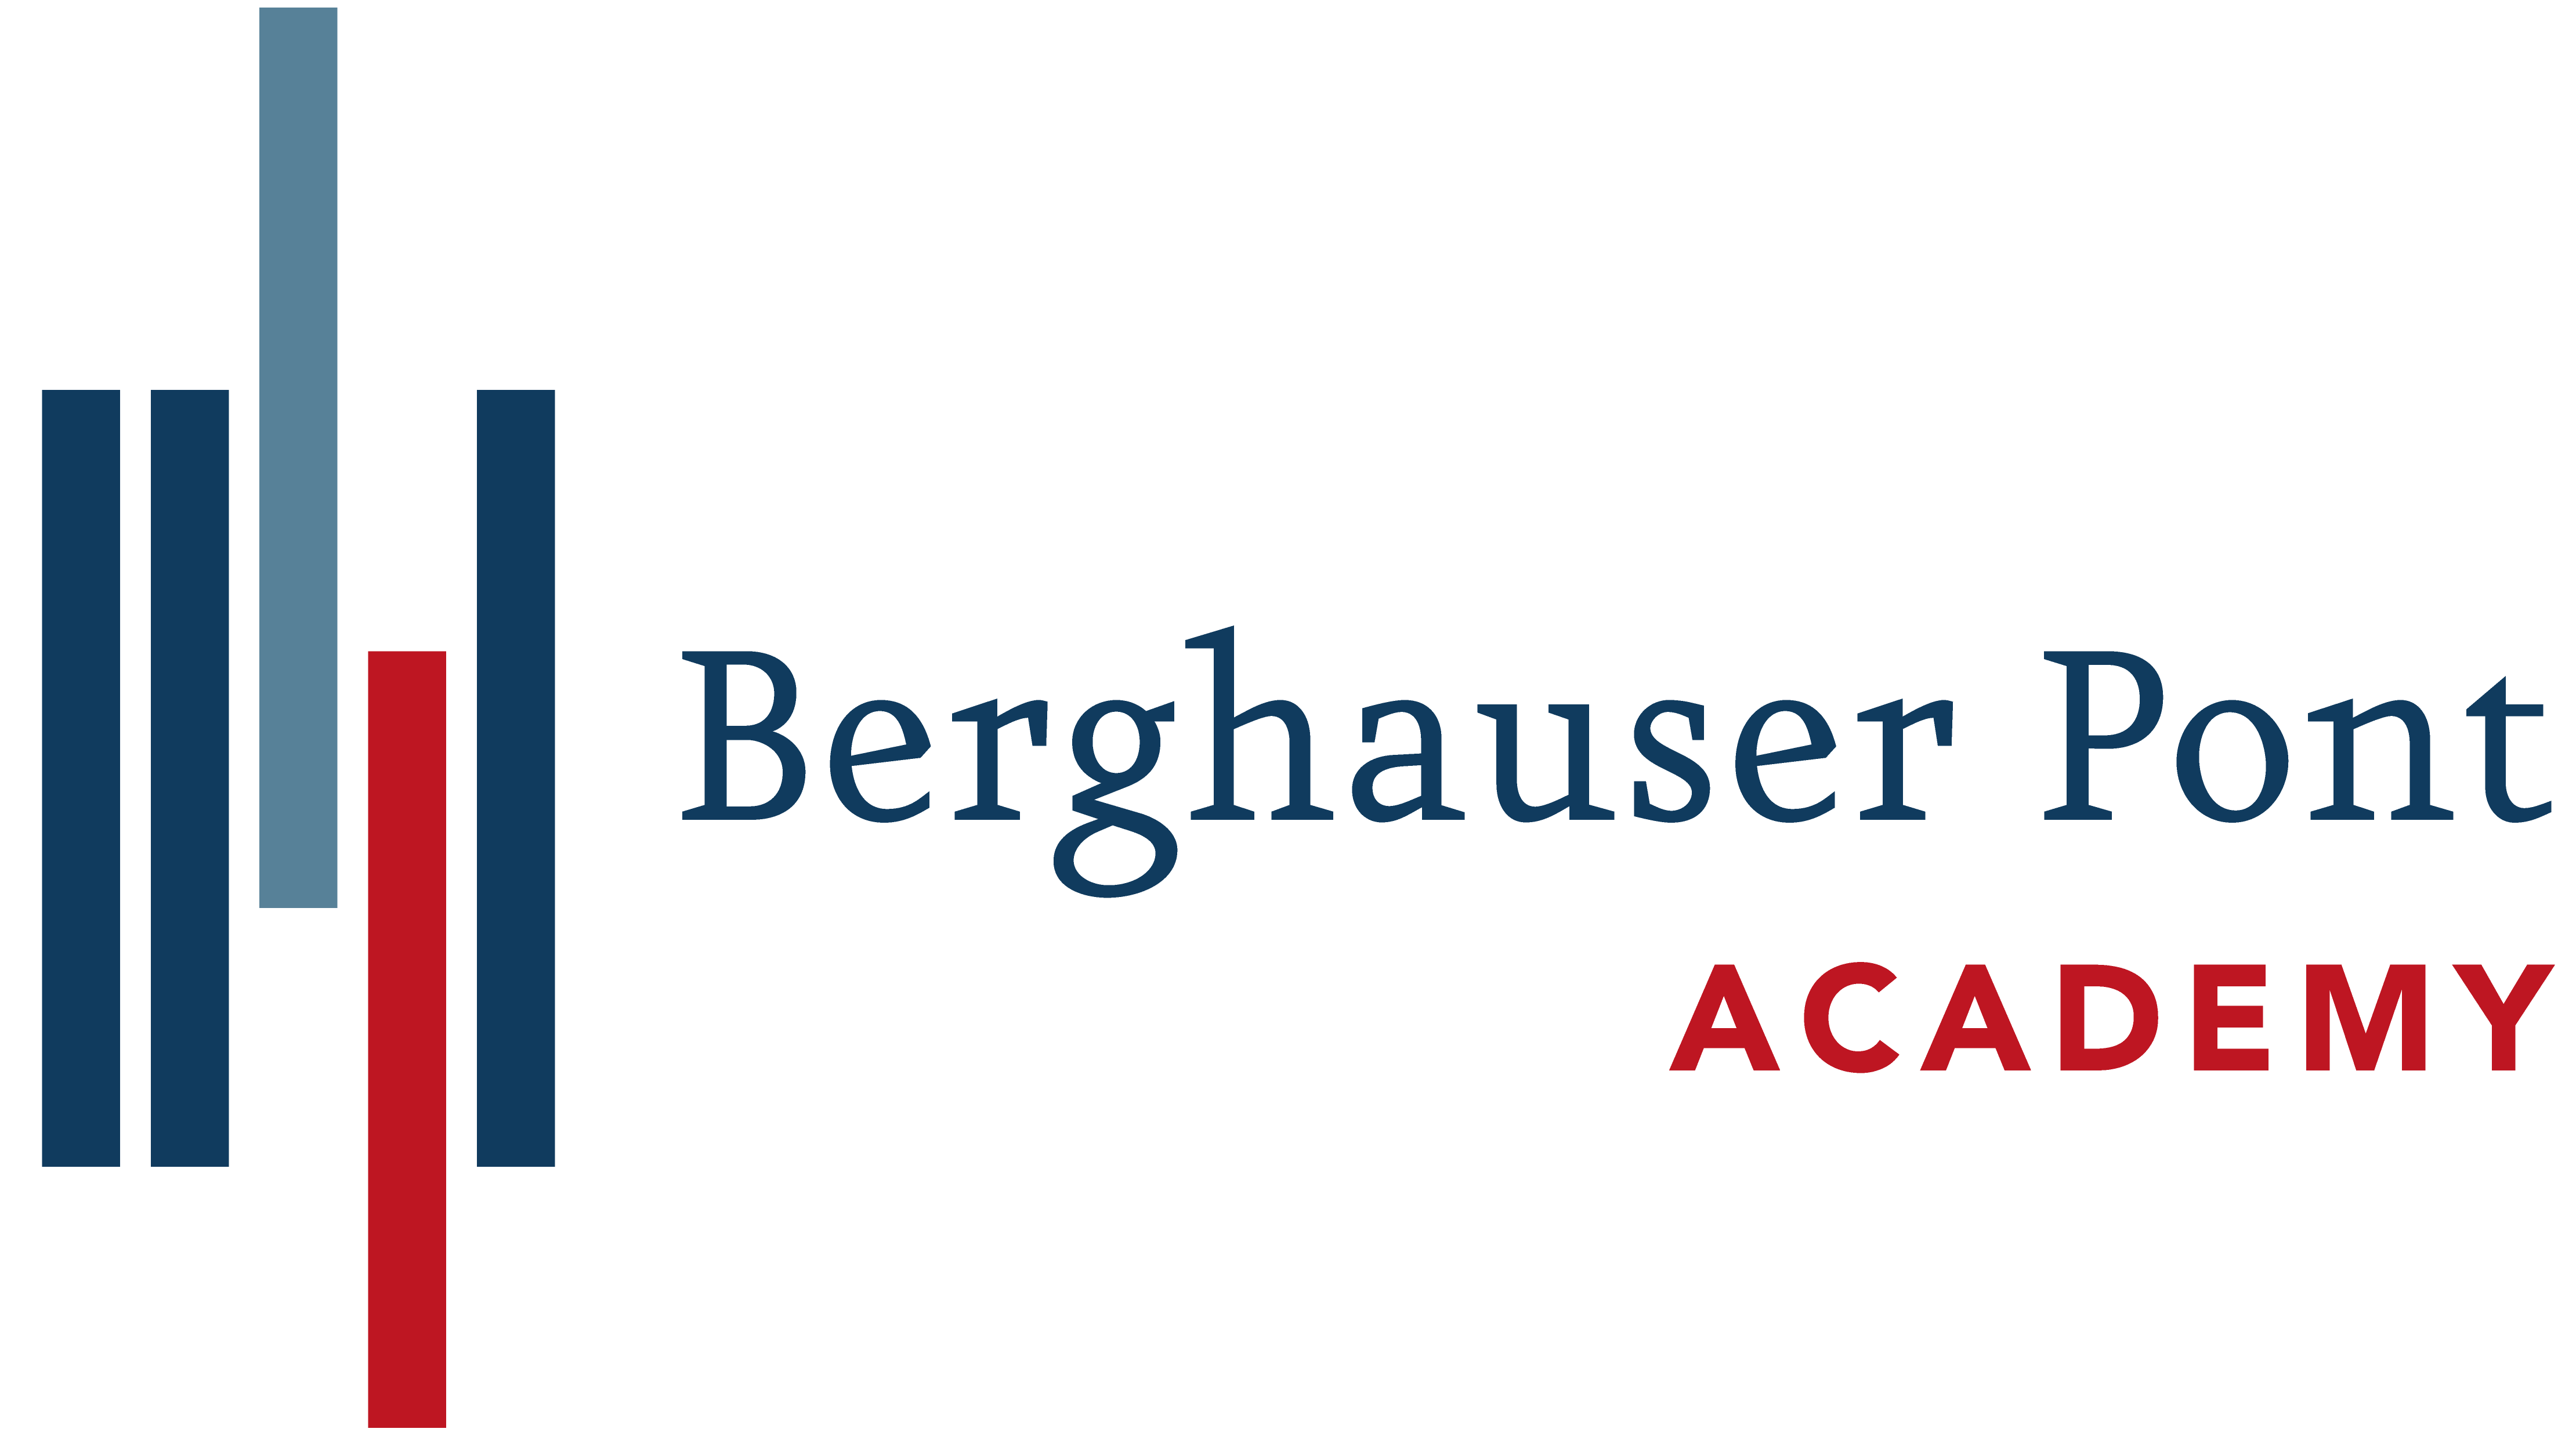 Berghauser Pont Academy